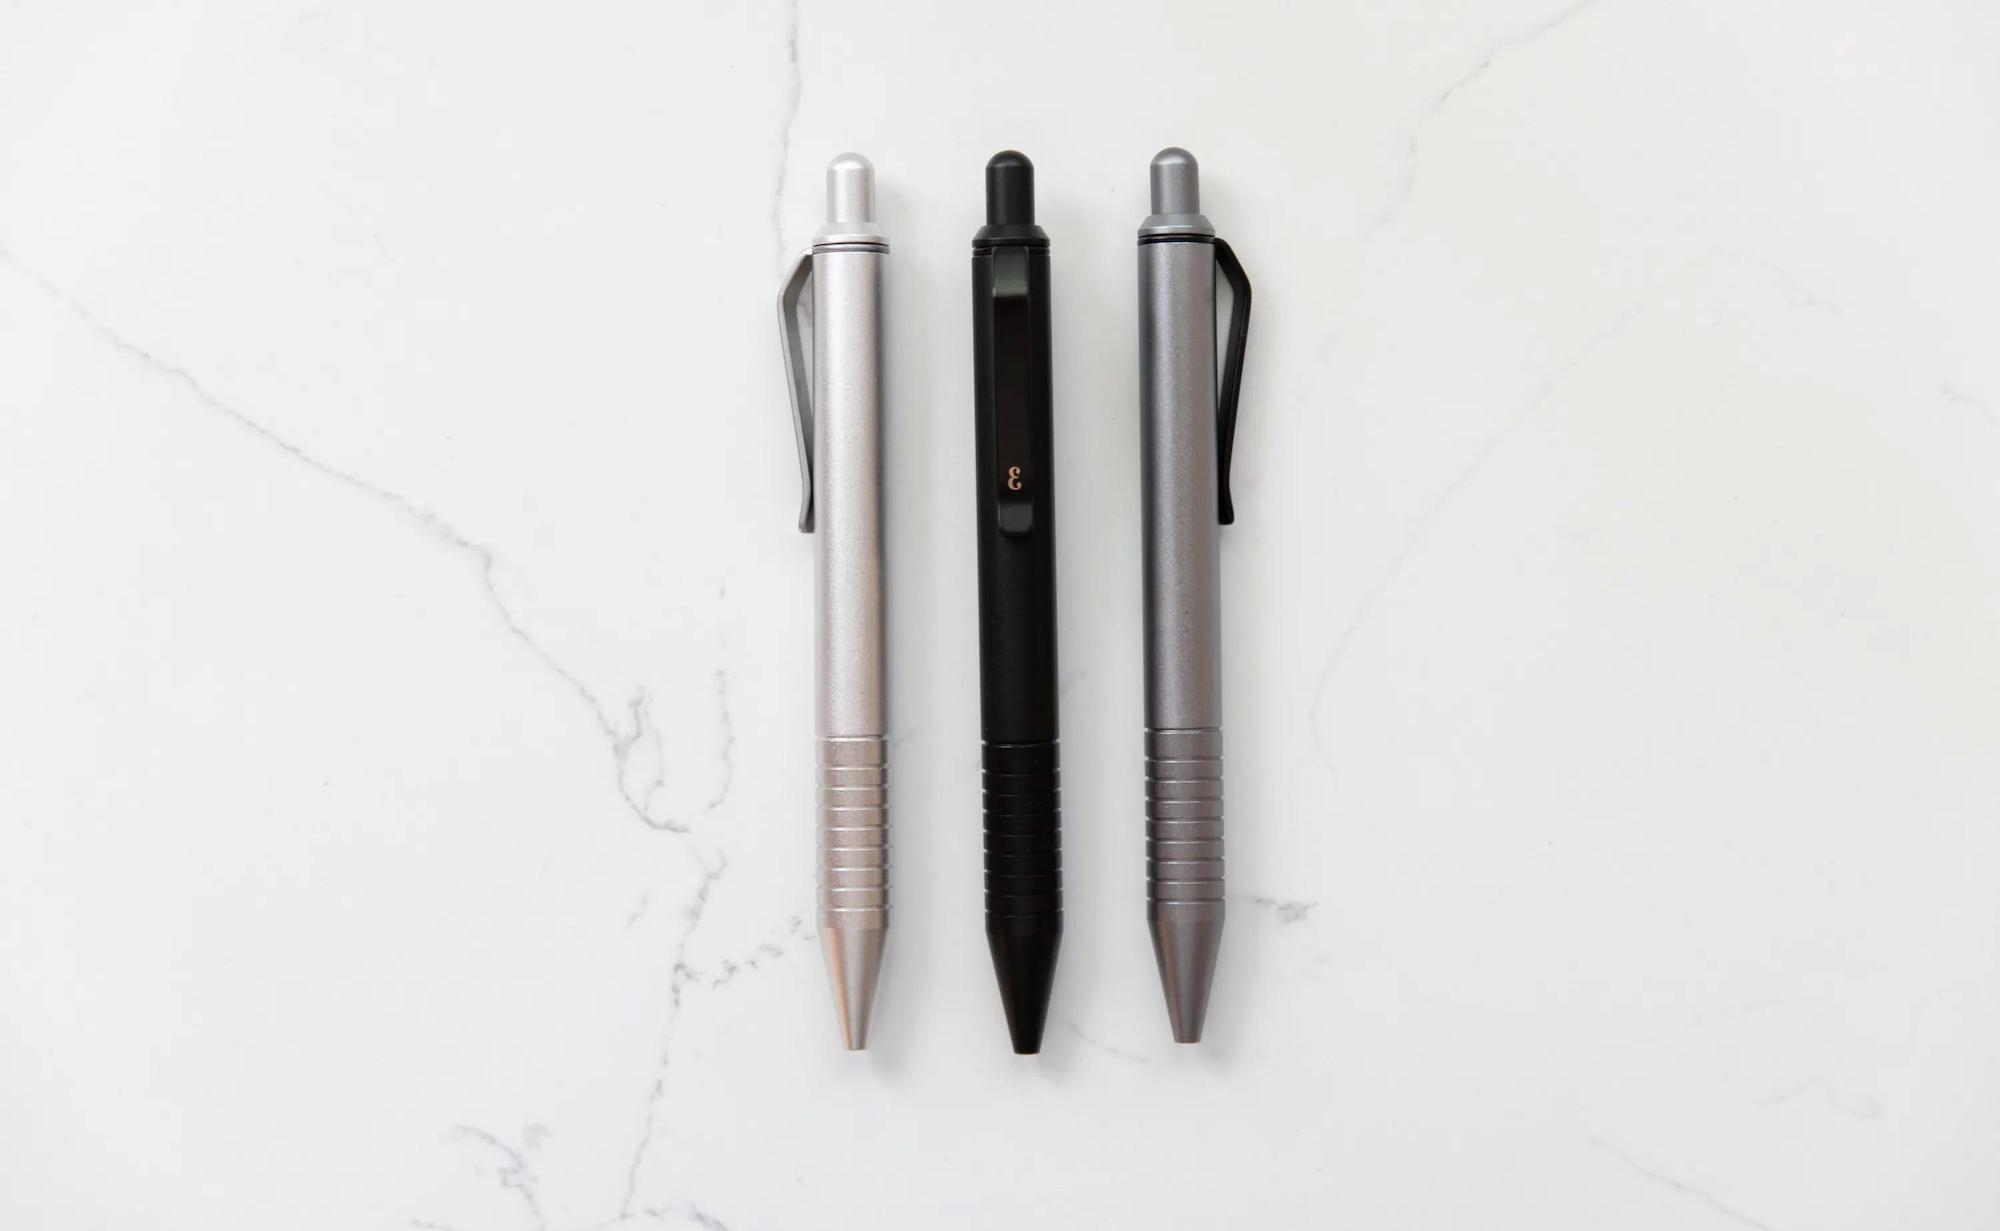 Everyman Grafton Mini EDC Twist Pen is easy to carry in your pocket